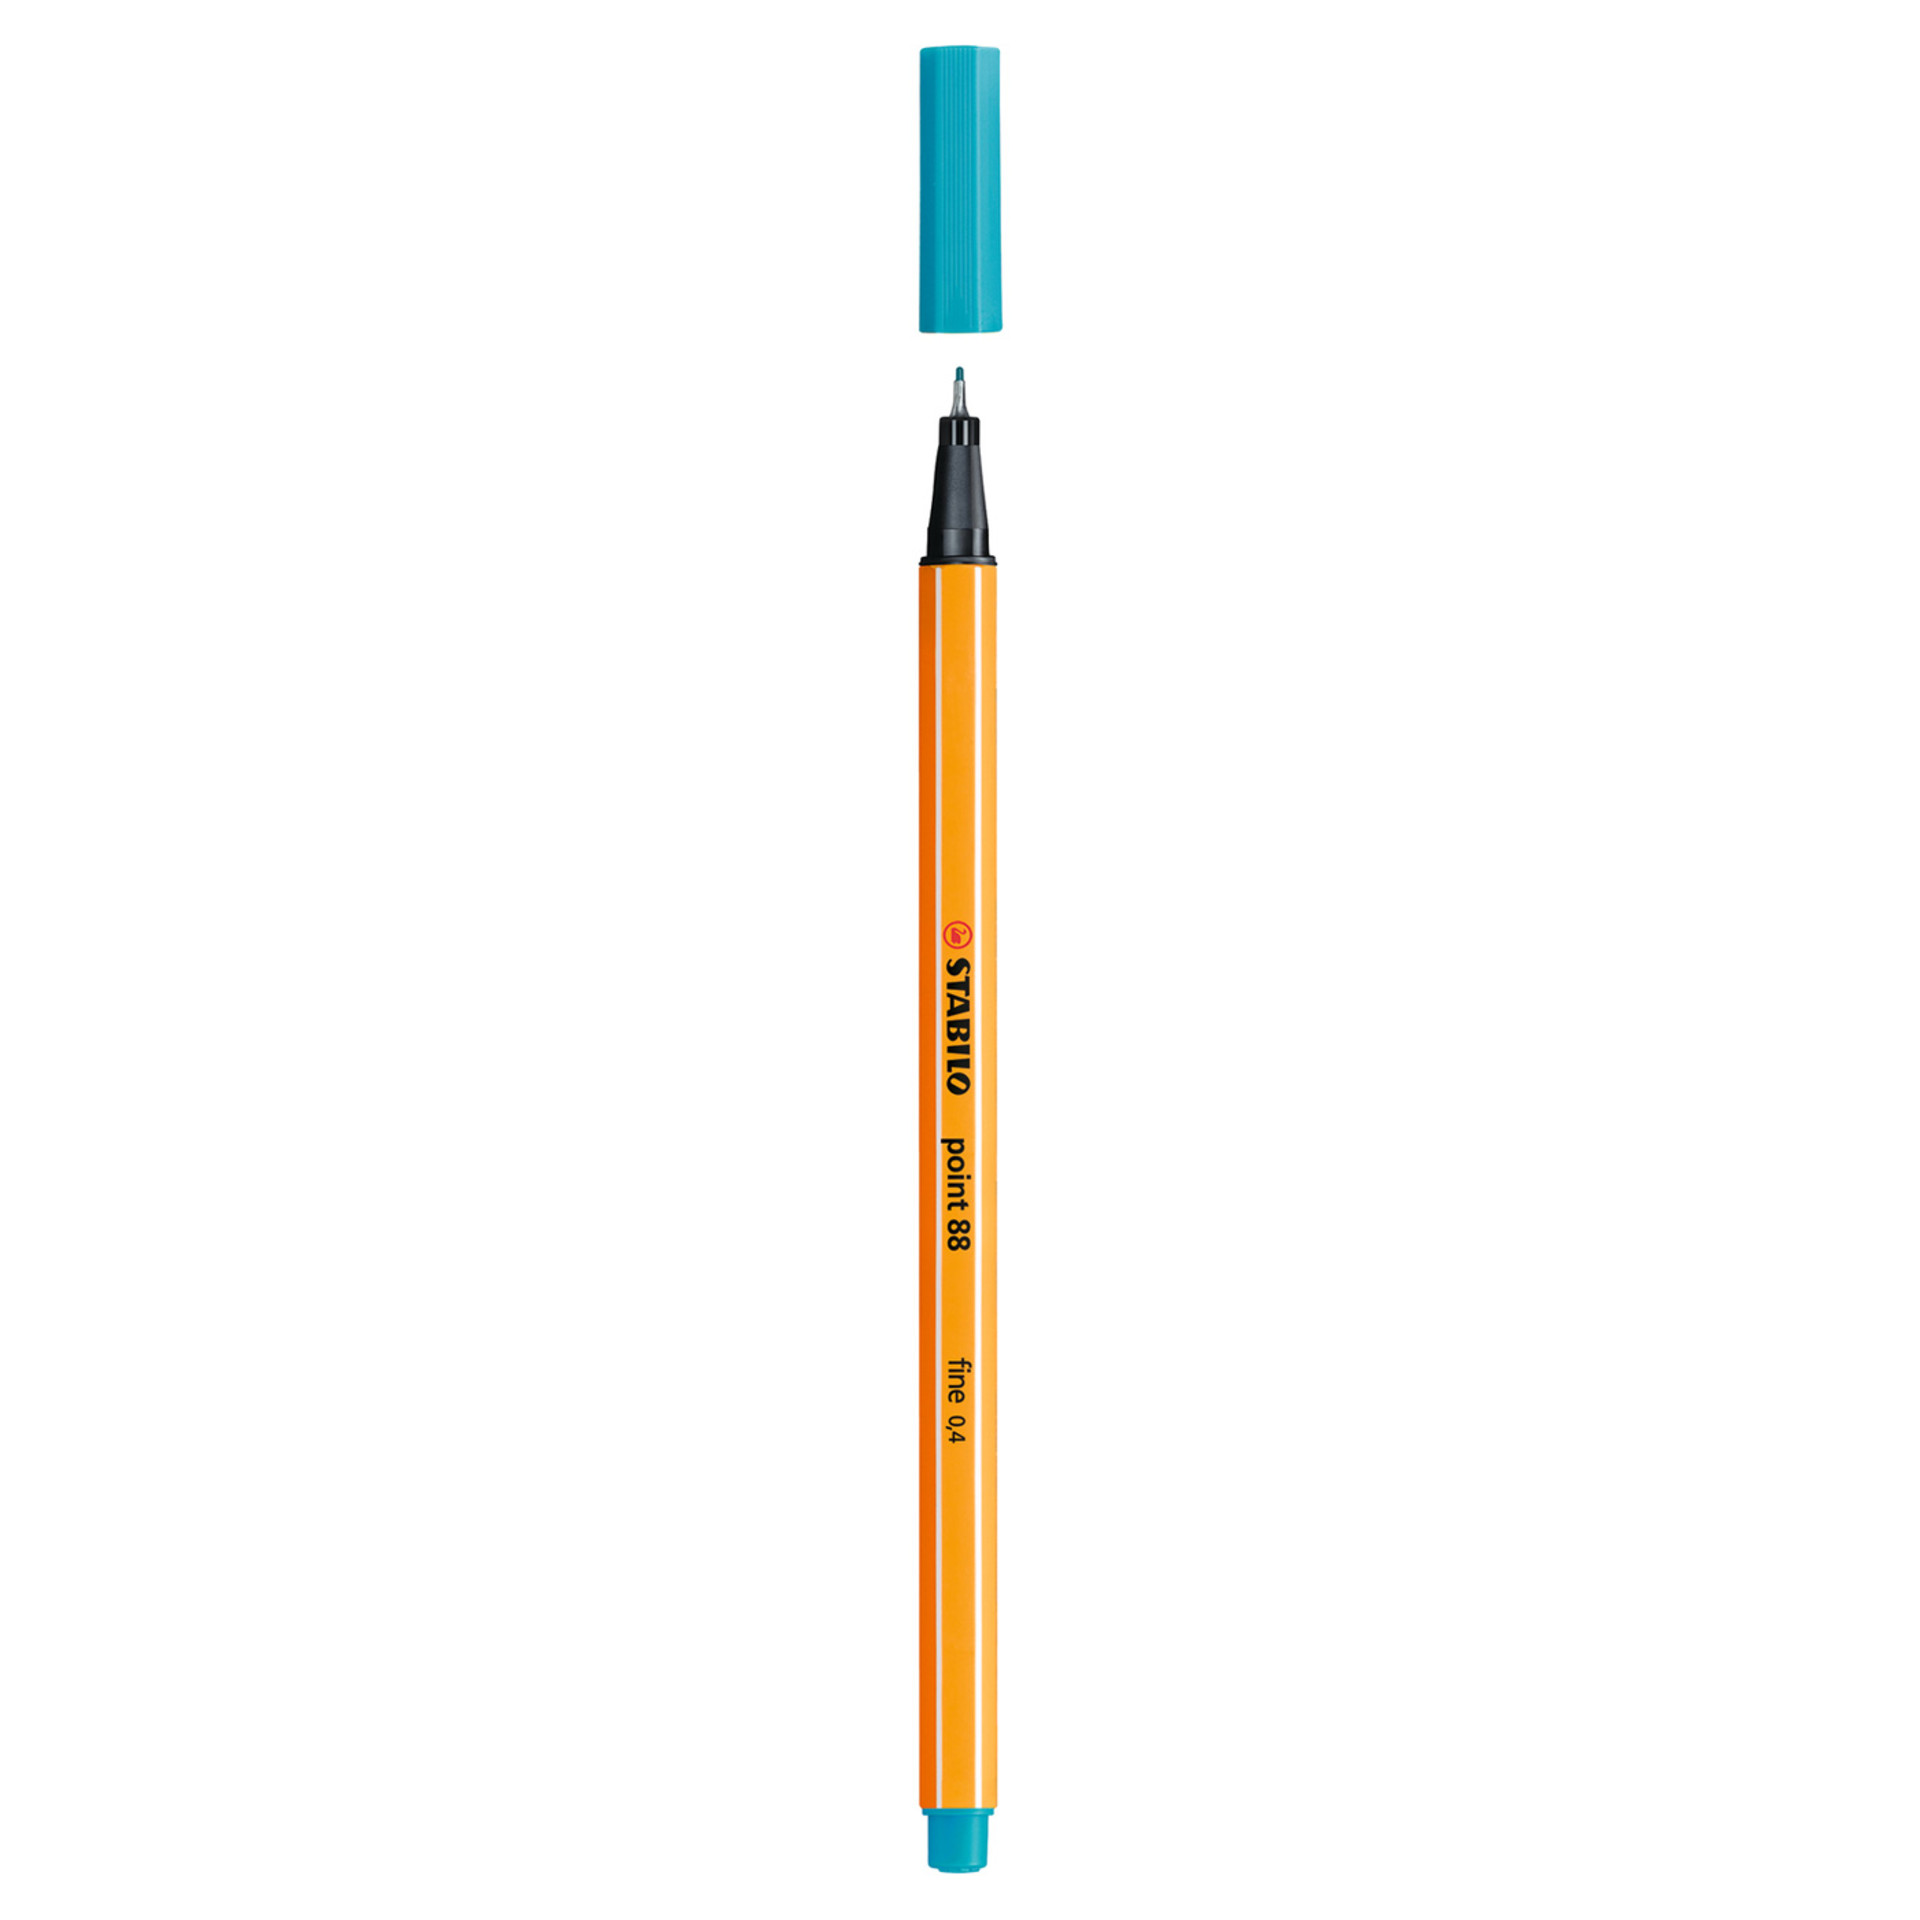 Stabilo Point 88 .4mm Fineliner Pen – Light Blue